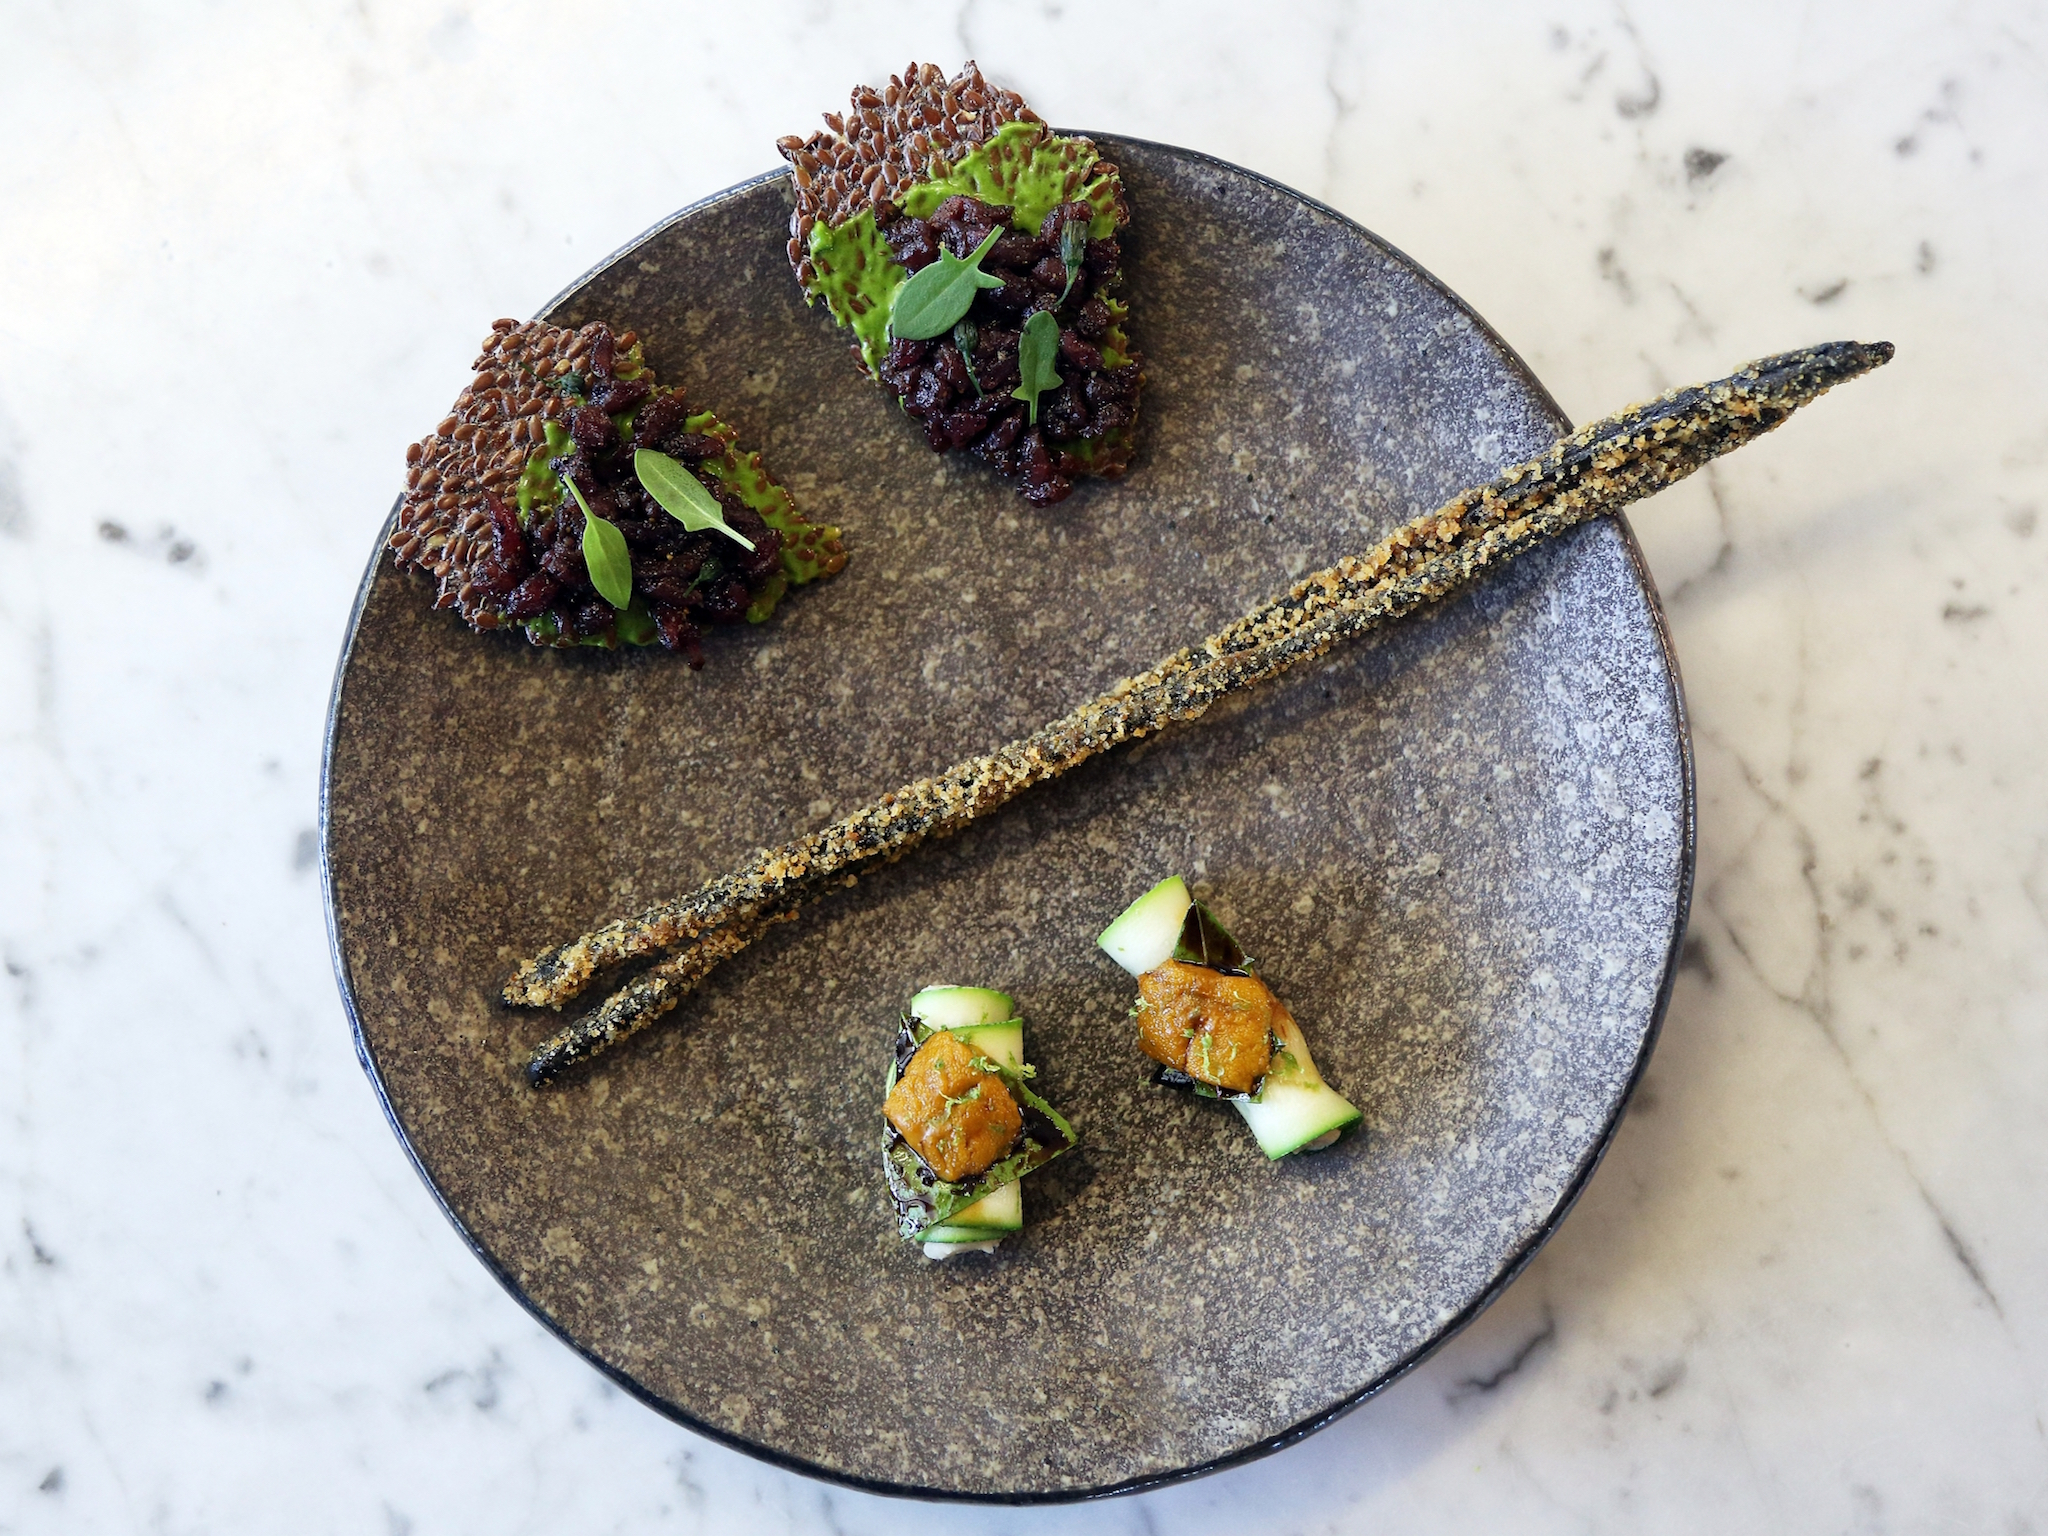 Splash out on a five-star meal at Brae